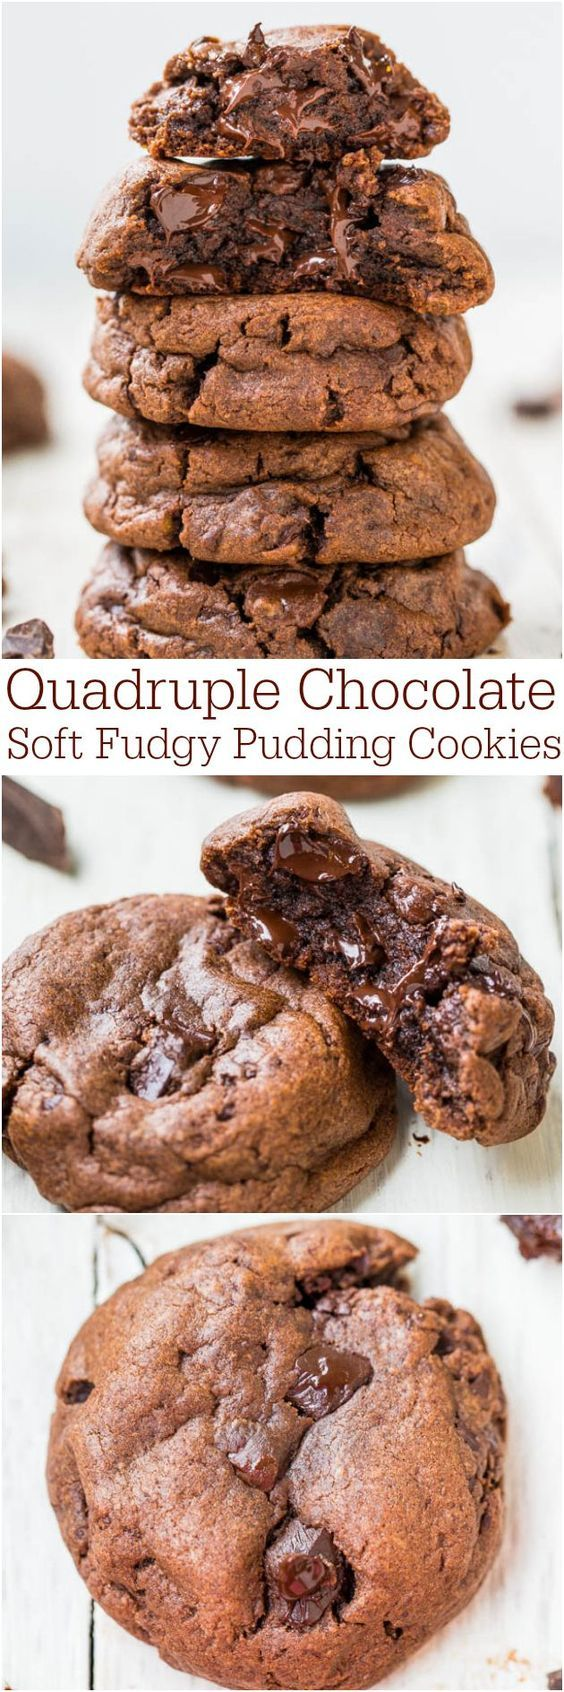 Quadruple Chocolate Soft Fudgy Pudding Cookies - Super soft and loaded with chocolate!